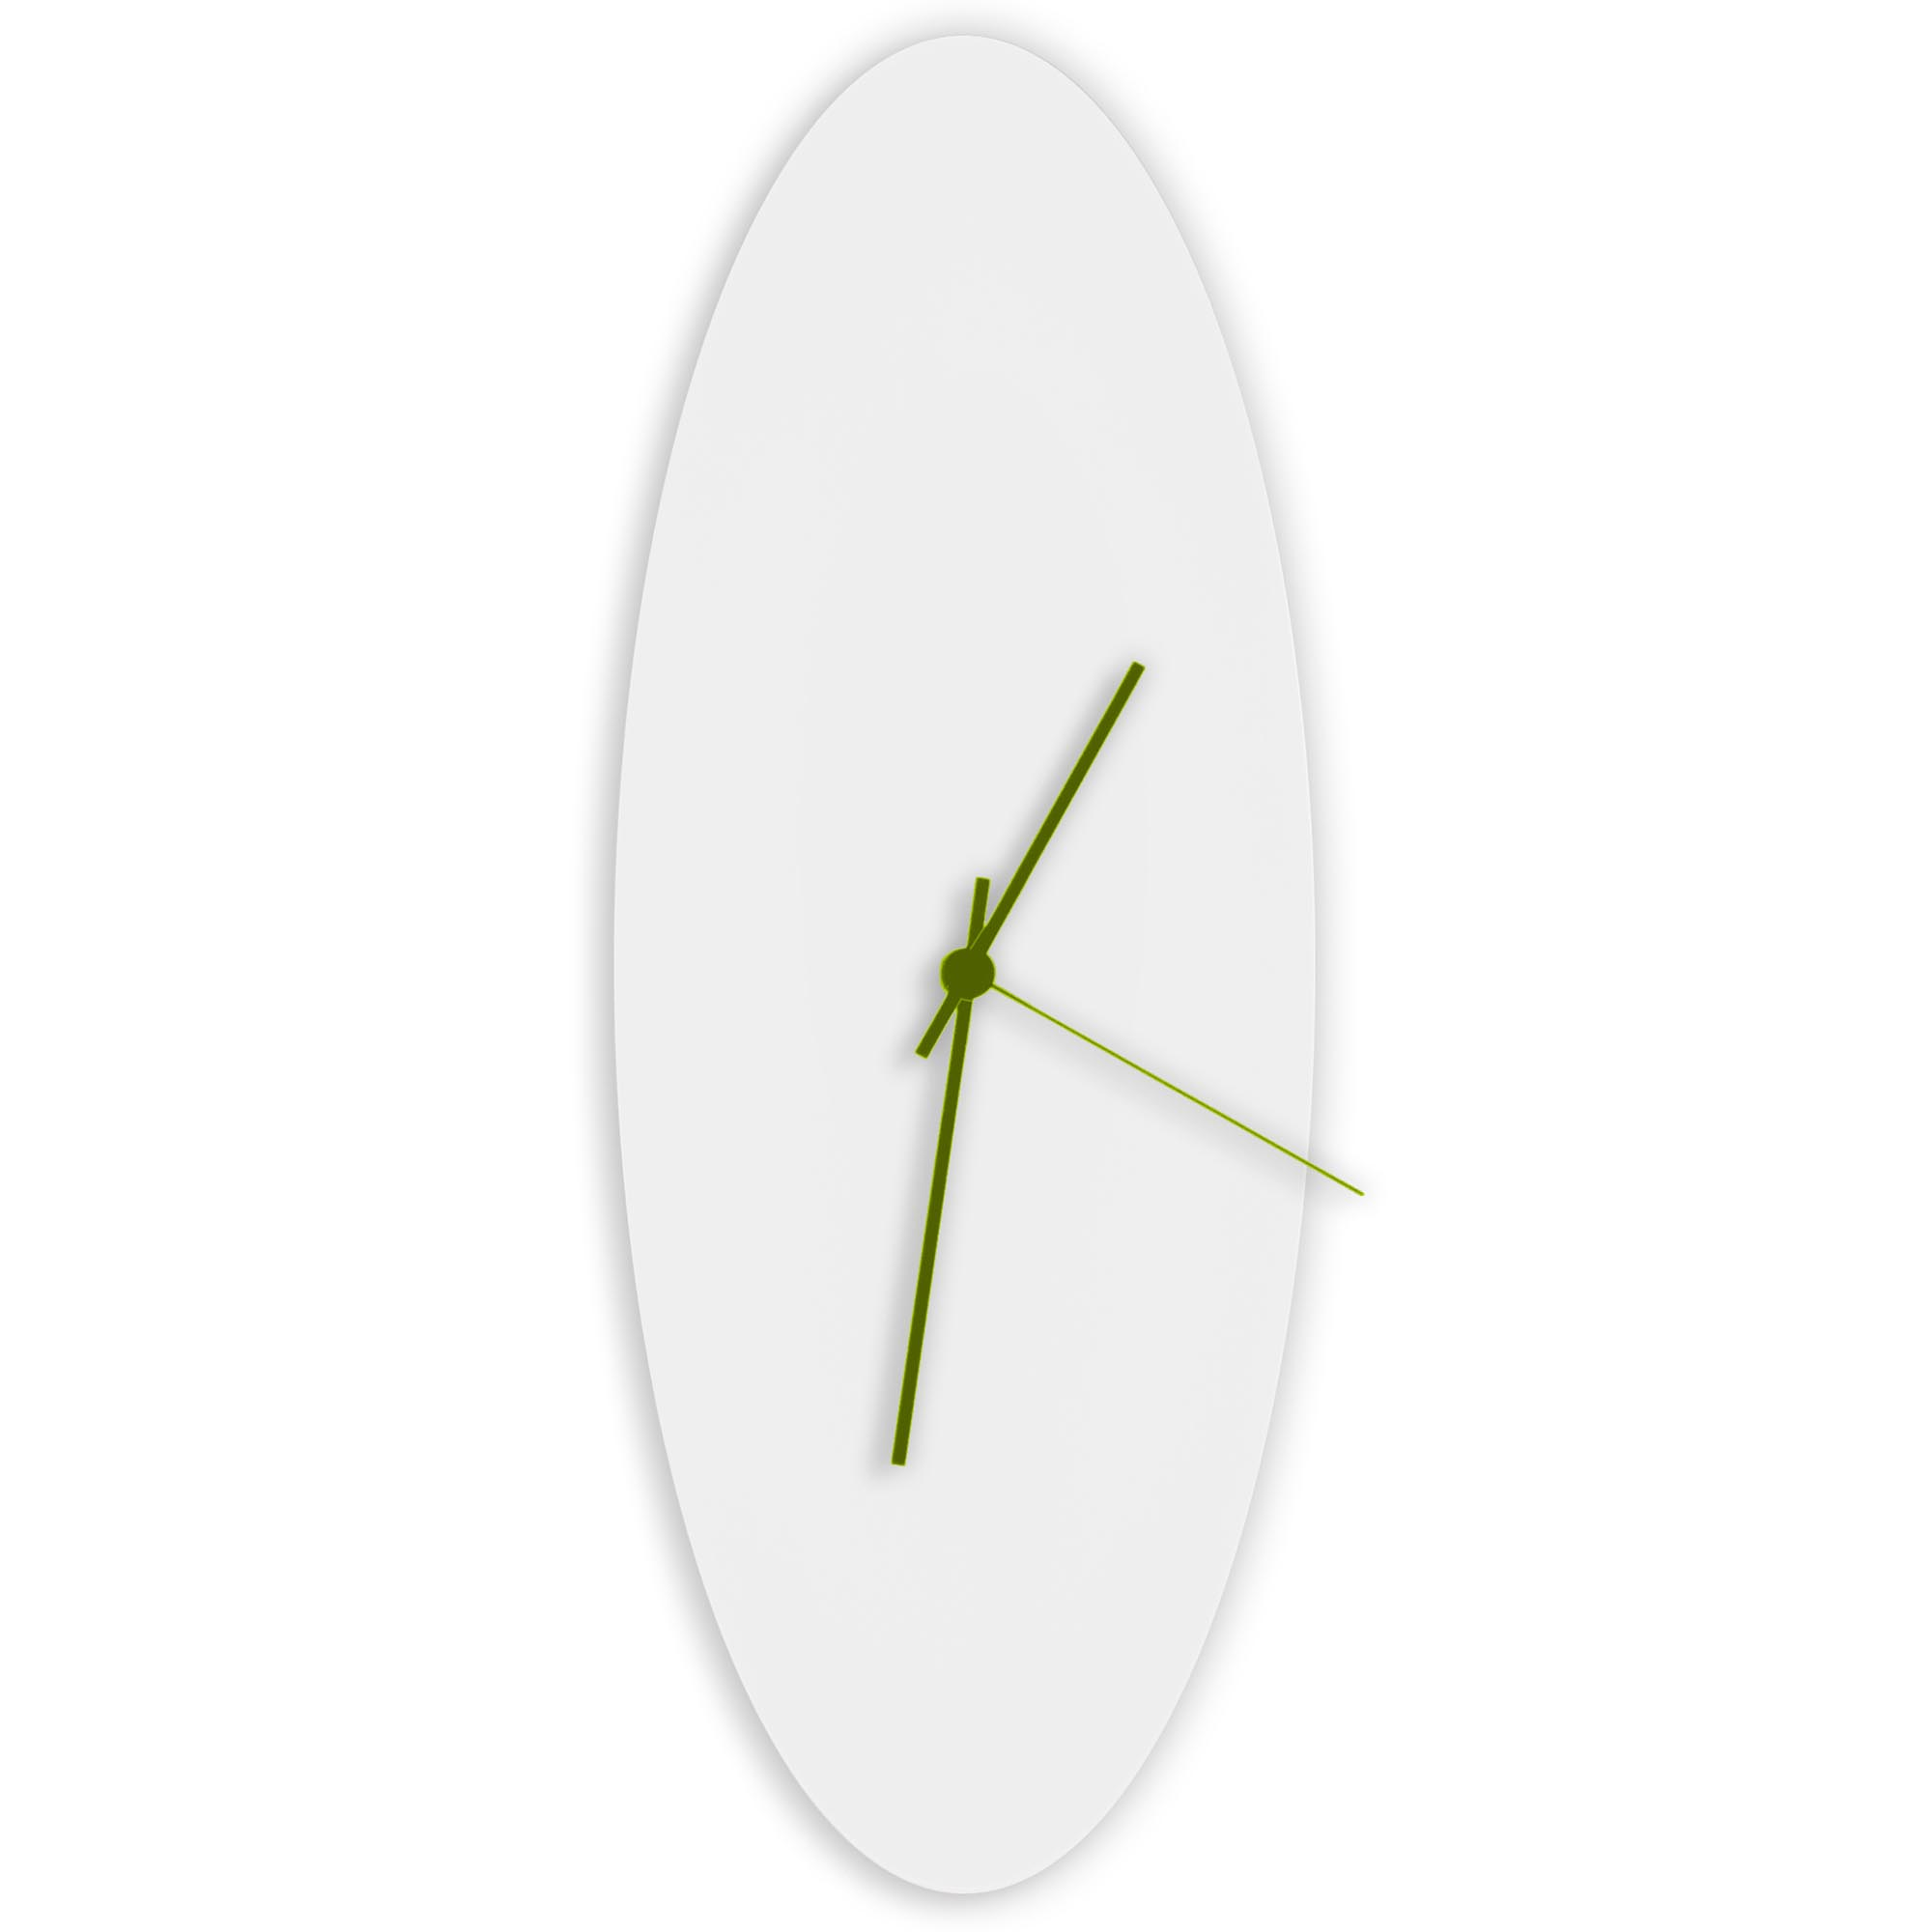 Whiteout Ellipse Clock Large by Adam Schwoeppe - Minimalist Modern White Metal Clock